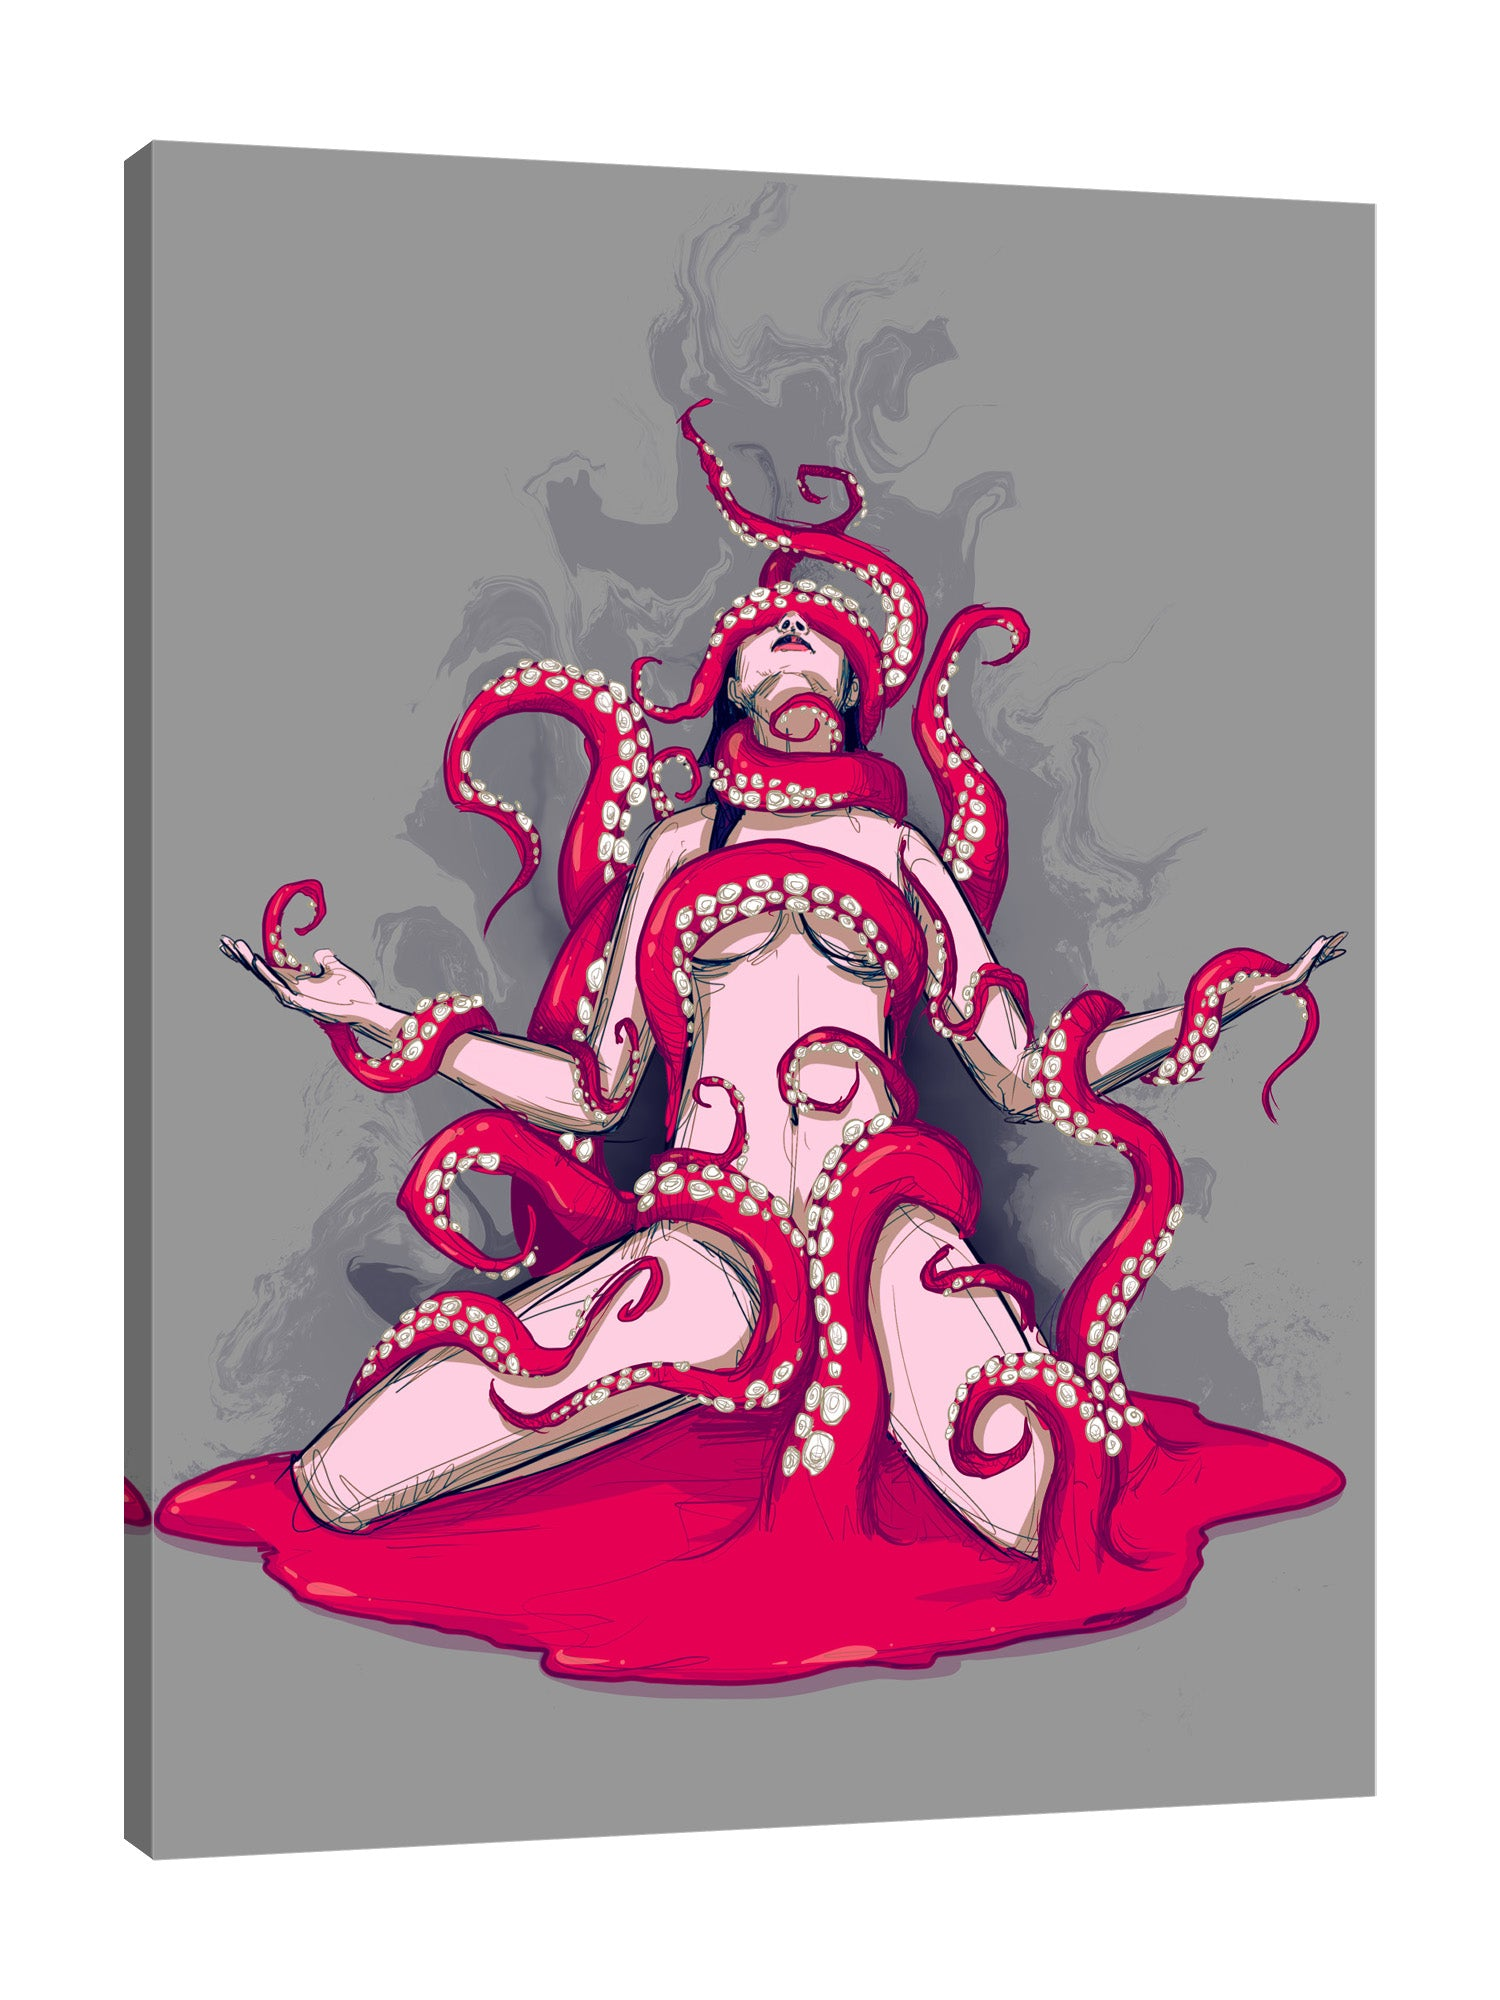 Ludwig-Van-Bacon,Vertical,3X4,Modern & Contemporary,Fantasy & Sci-Fi,Entertainment,People,woman,lady,octopus,octopuses,erotic,red,bloody,blood,red,heart of,heart,tentacles,tentacle,Charcoal Gray,Red,Gray,Blue,Rose Purple,White,Purple,Black